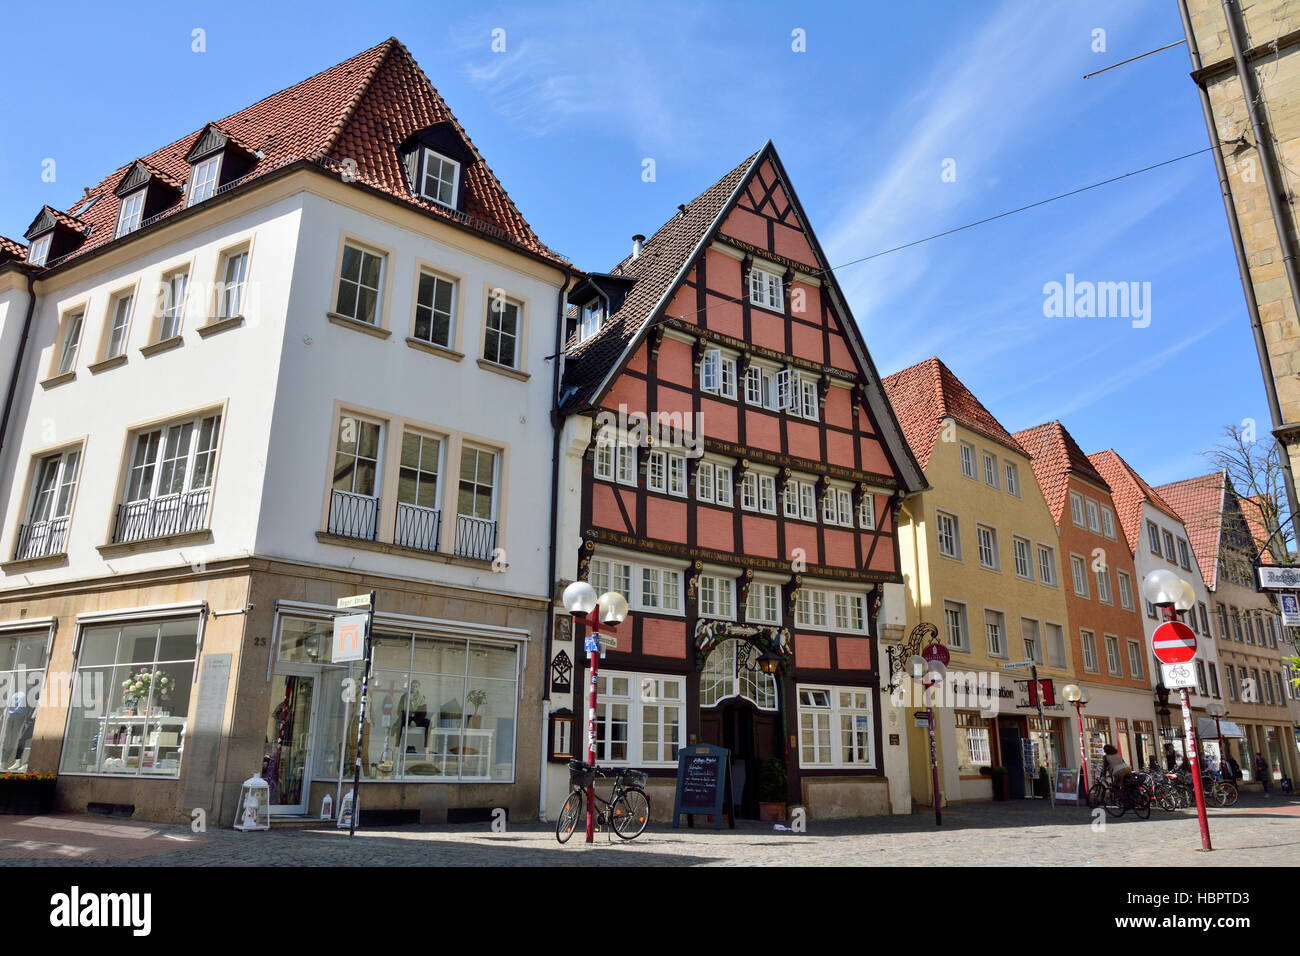 Street view on Bierstrasse street in Osnabruck, with historic building Romantik Hotel Walhalla - Stock Image